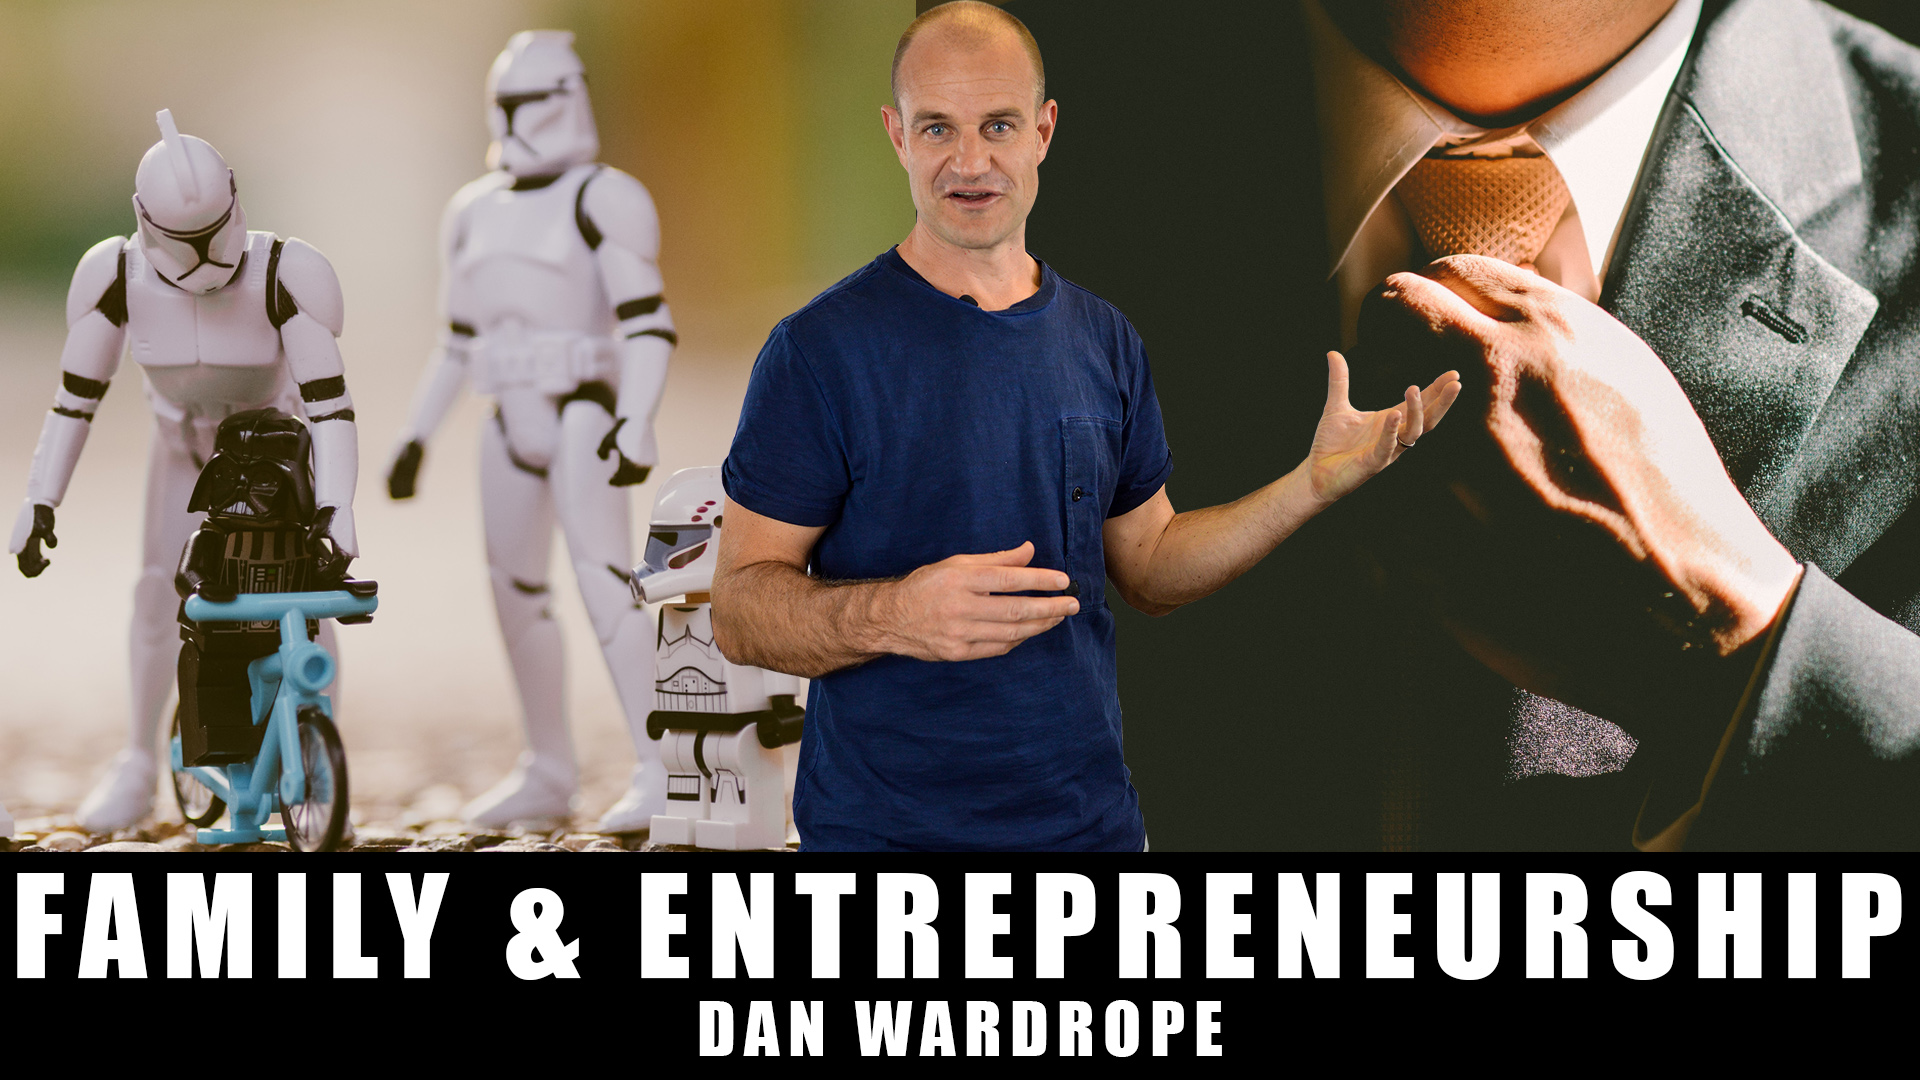 Balancing-work-and-family-when-you're-an-entrepreneur